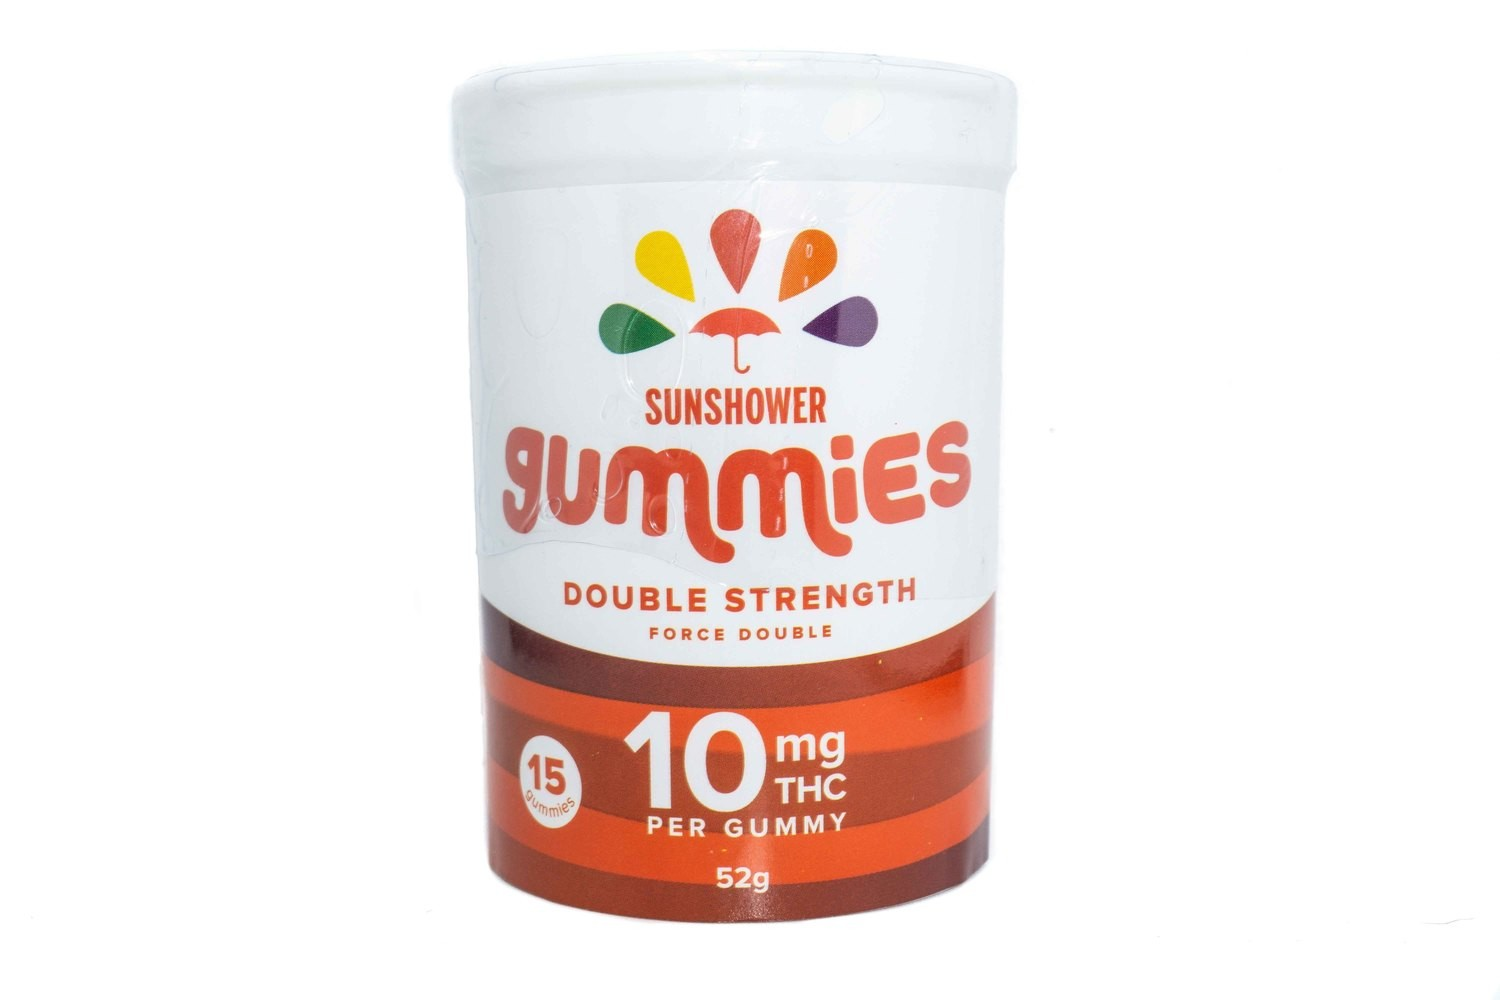 Double Strength Sunshower Gummies by Baked Edibles (150mg)